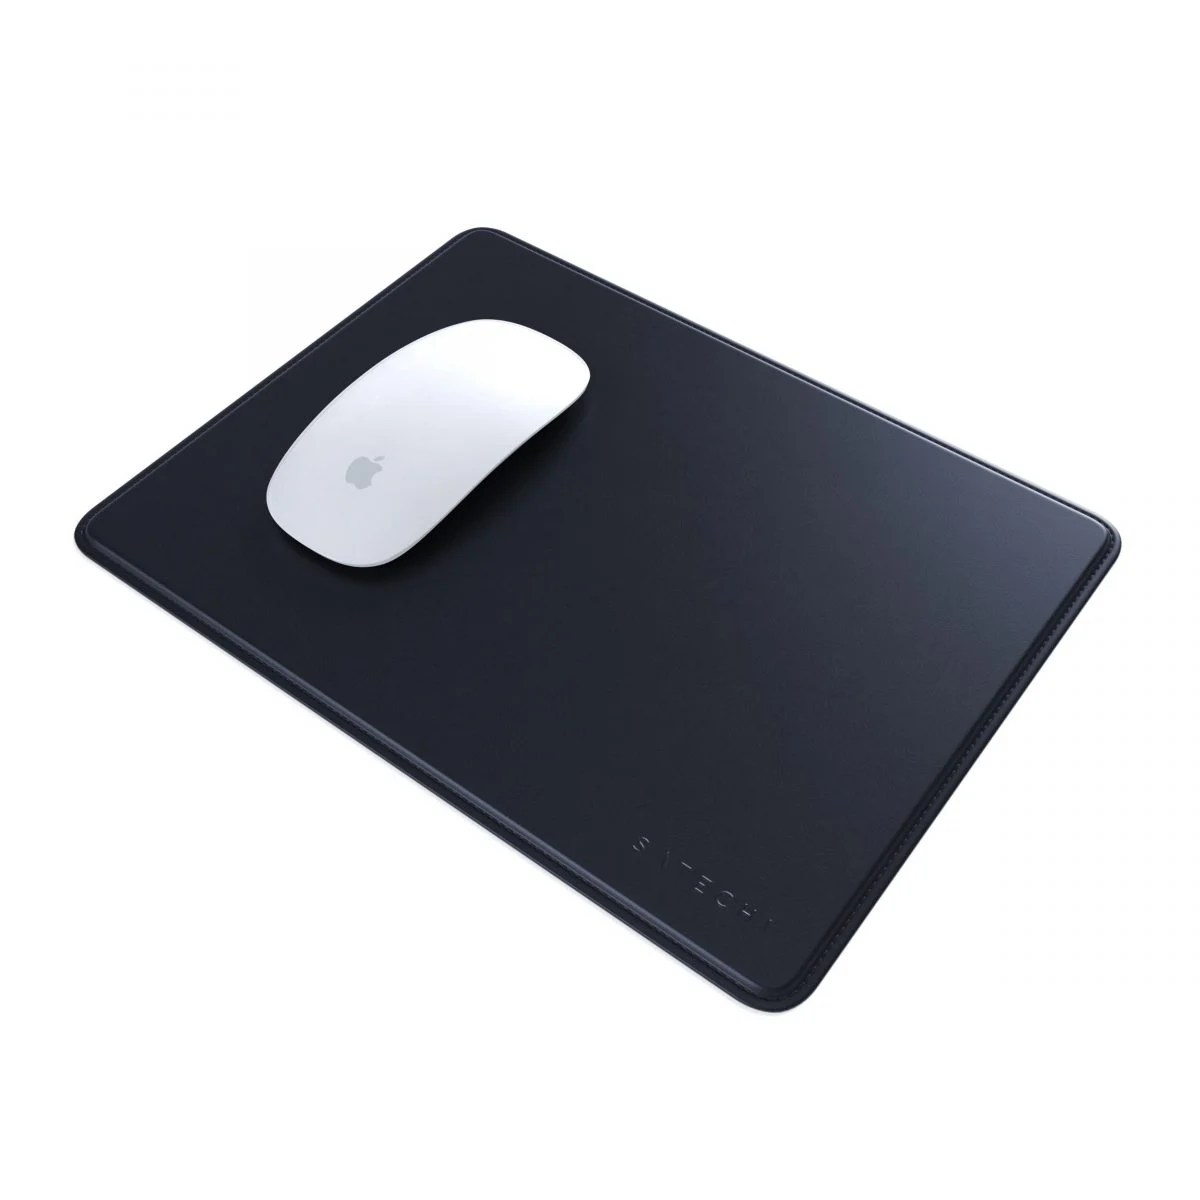 Satechi Bluetooth Keyboard & Mouse Pad Can Complete Your Desktop